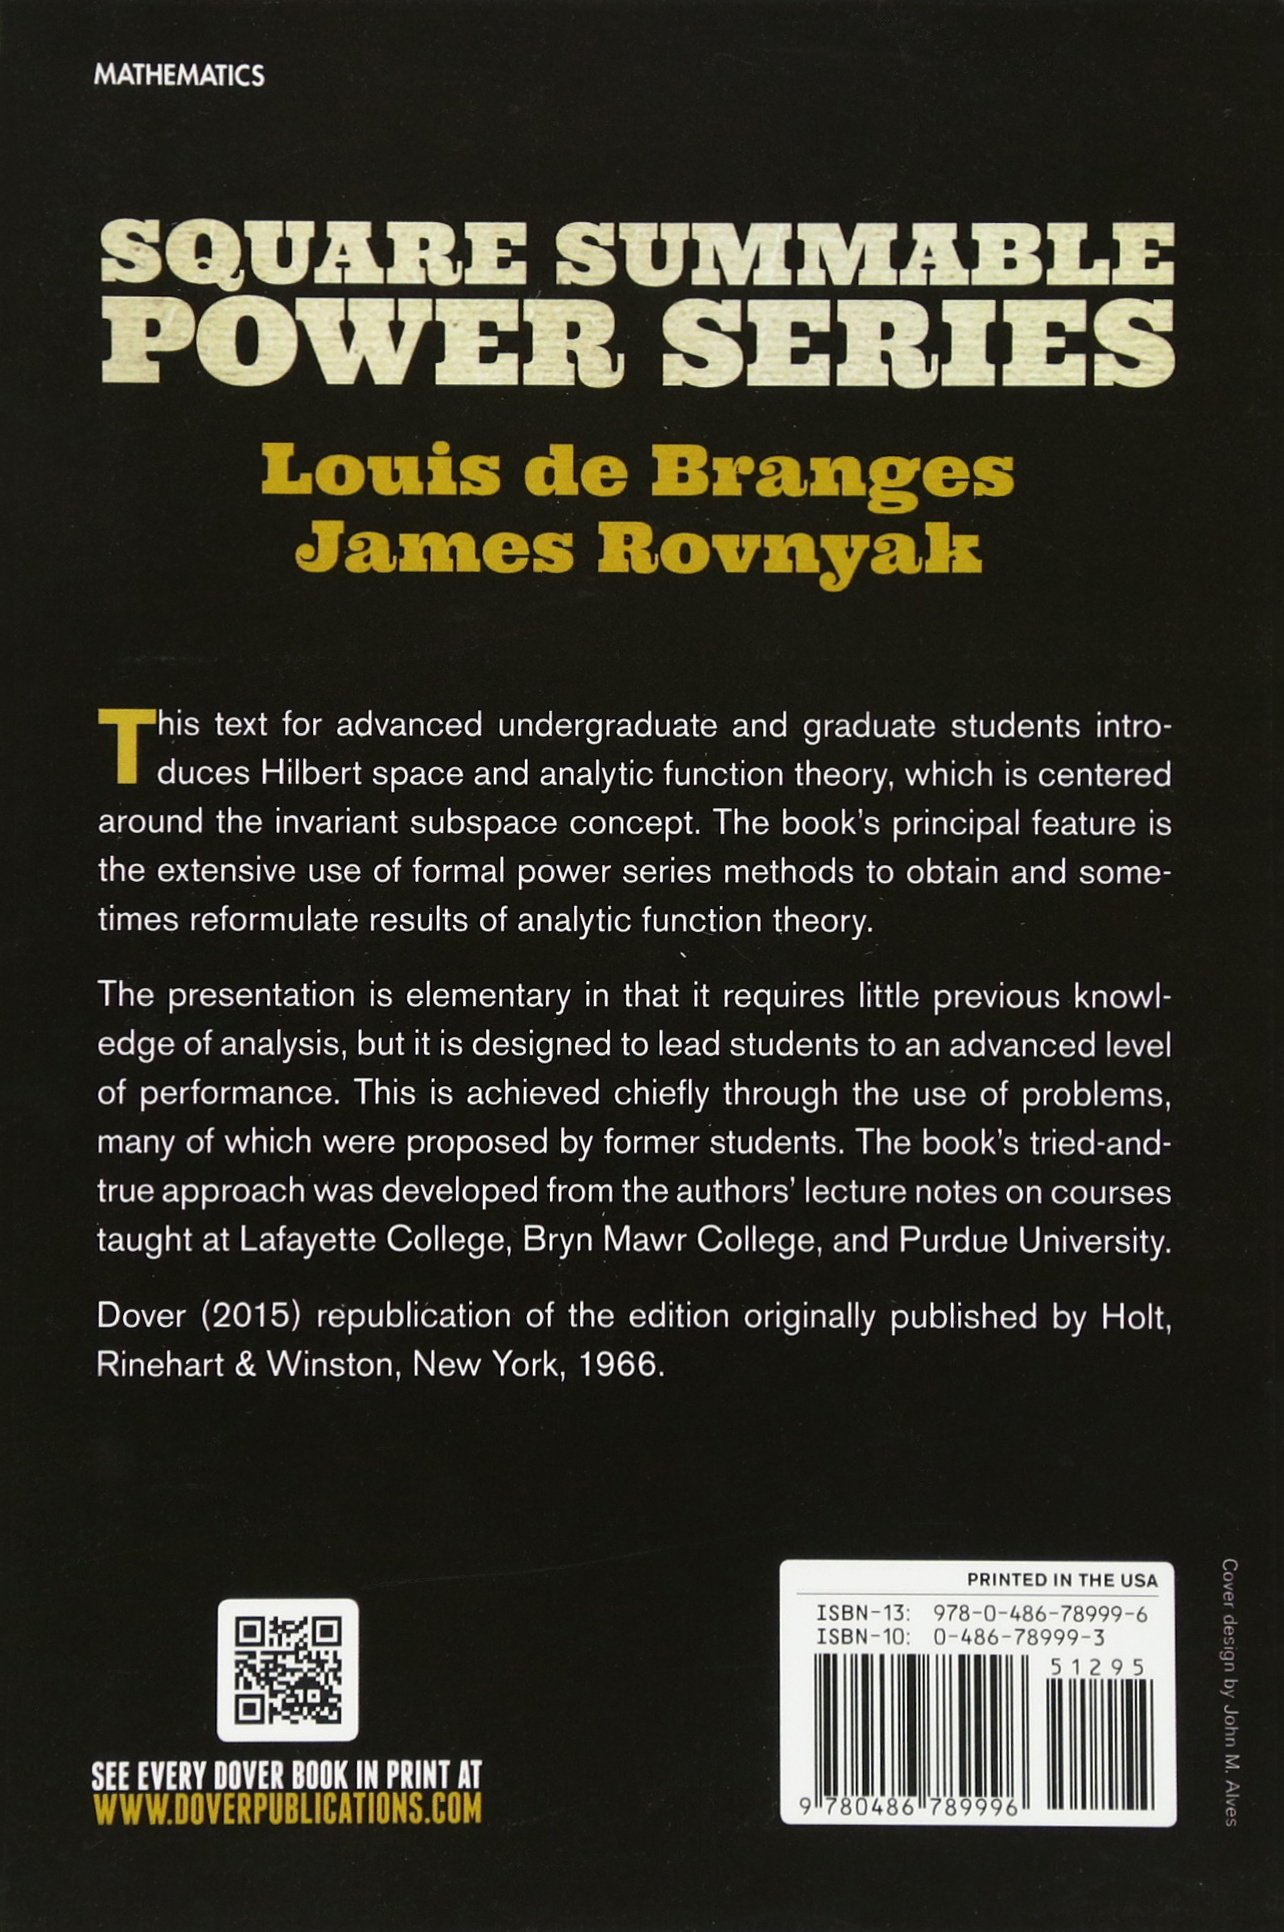 Square summable power series dover books on mathematics louis square summable power series dover books on mathematics louis de branges james rovnyak 9780486789996 amazon books fandeluxe Gallery